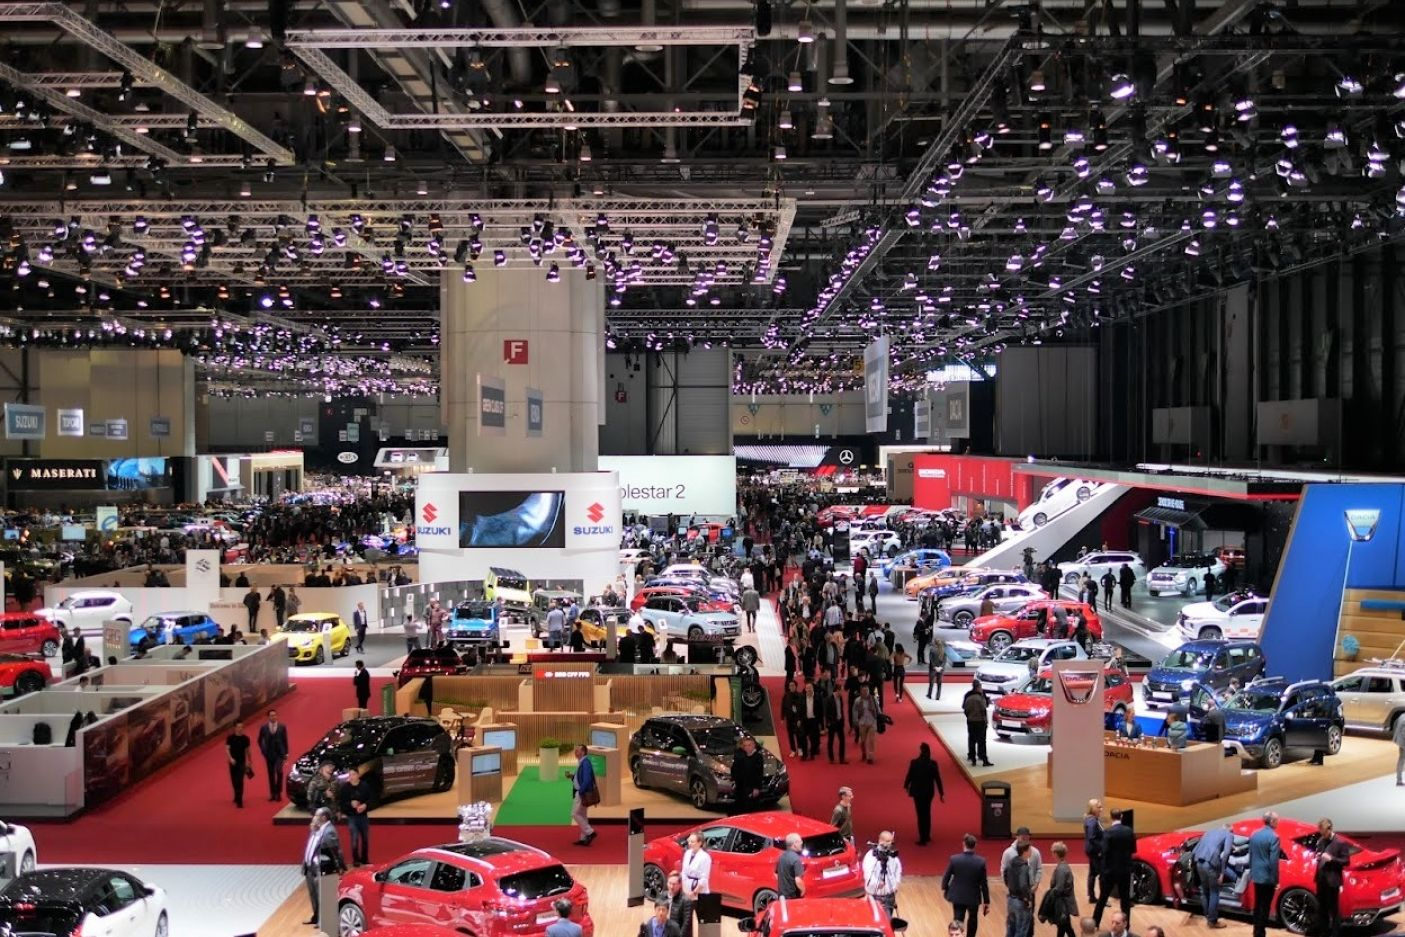 © Motors Inside - Le Salon de l'Automobile l'an dernier en 2019